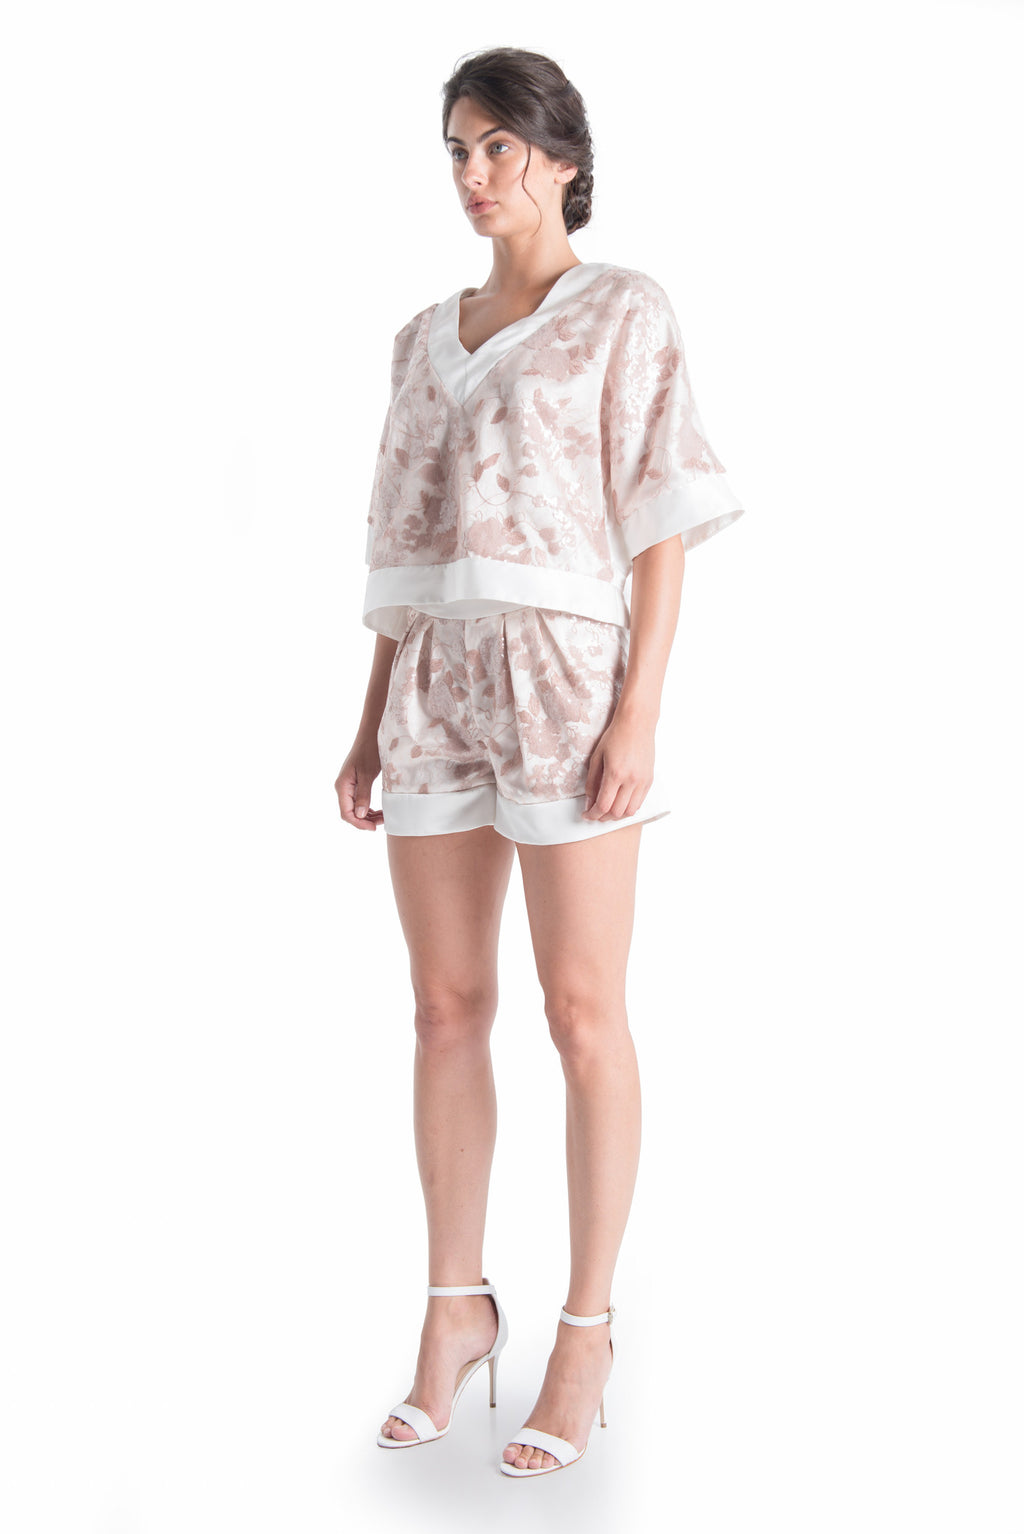 FLEUR Oversized Silk Top - ROMANTIC DUSTY | SAMPLE | HAUS OF SONG